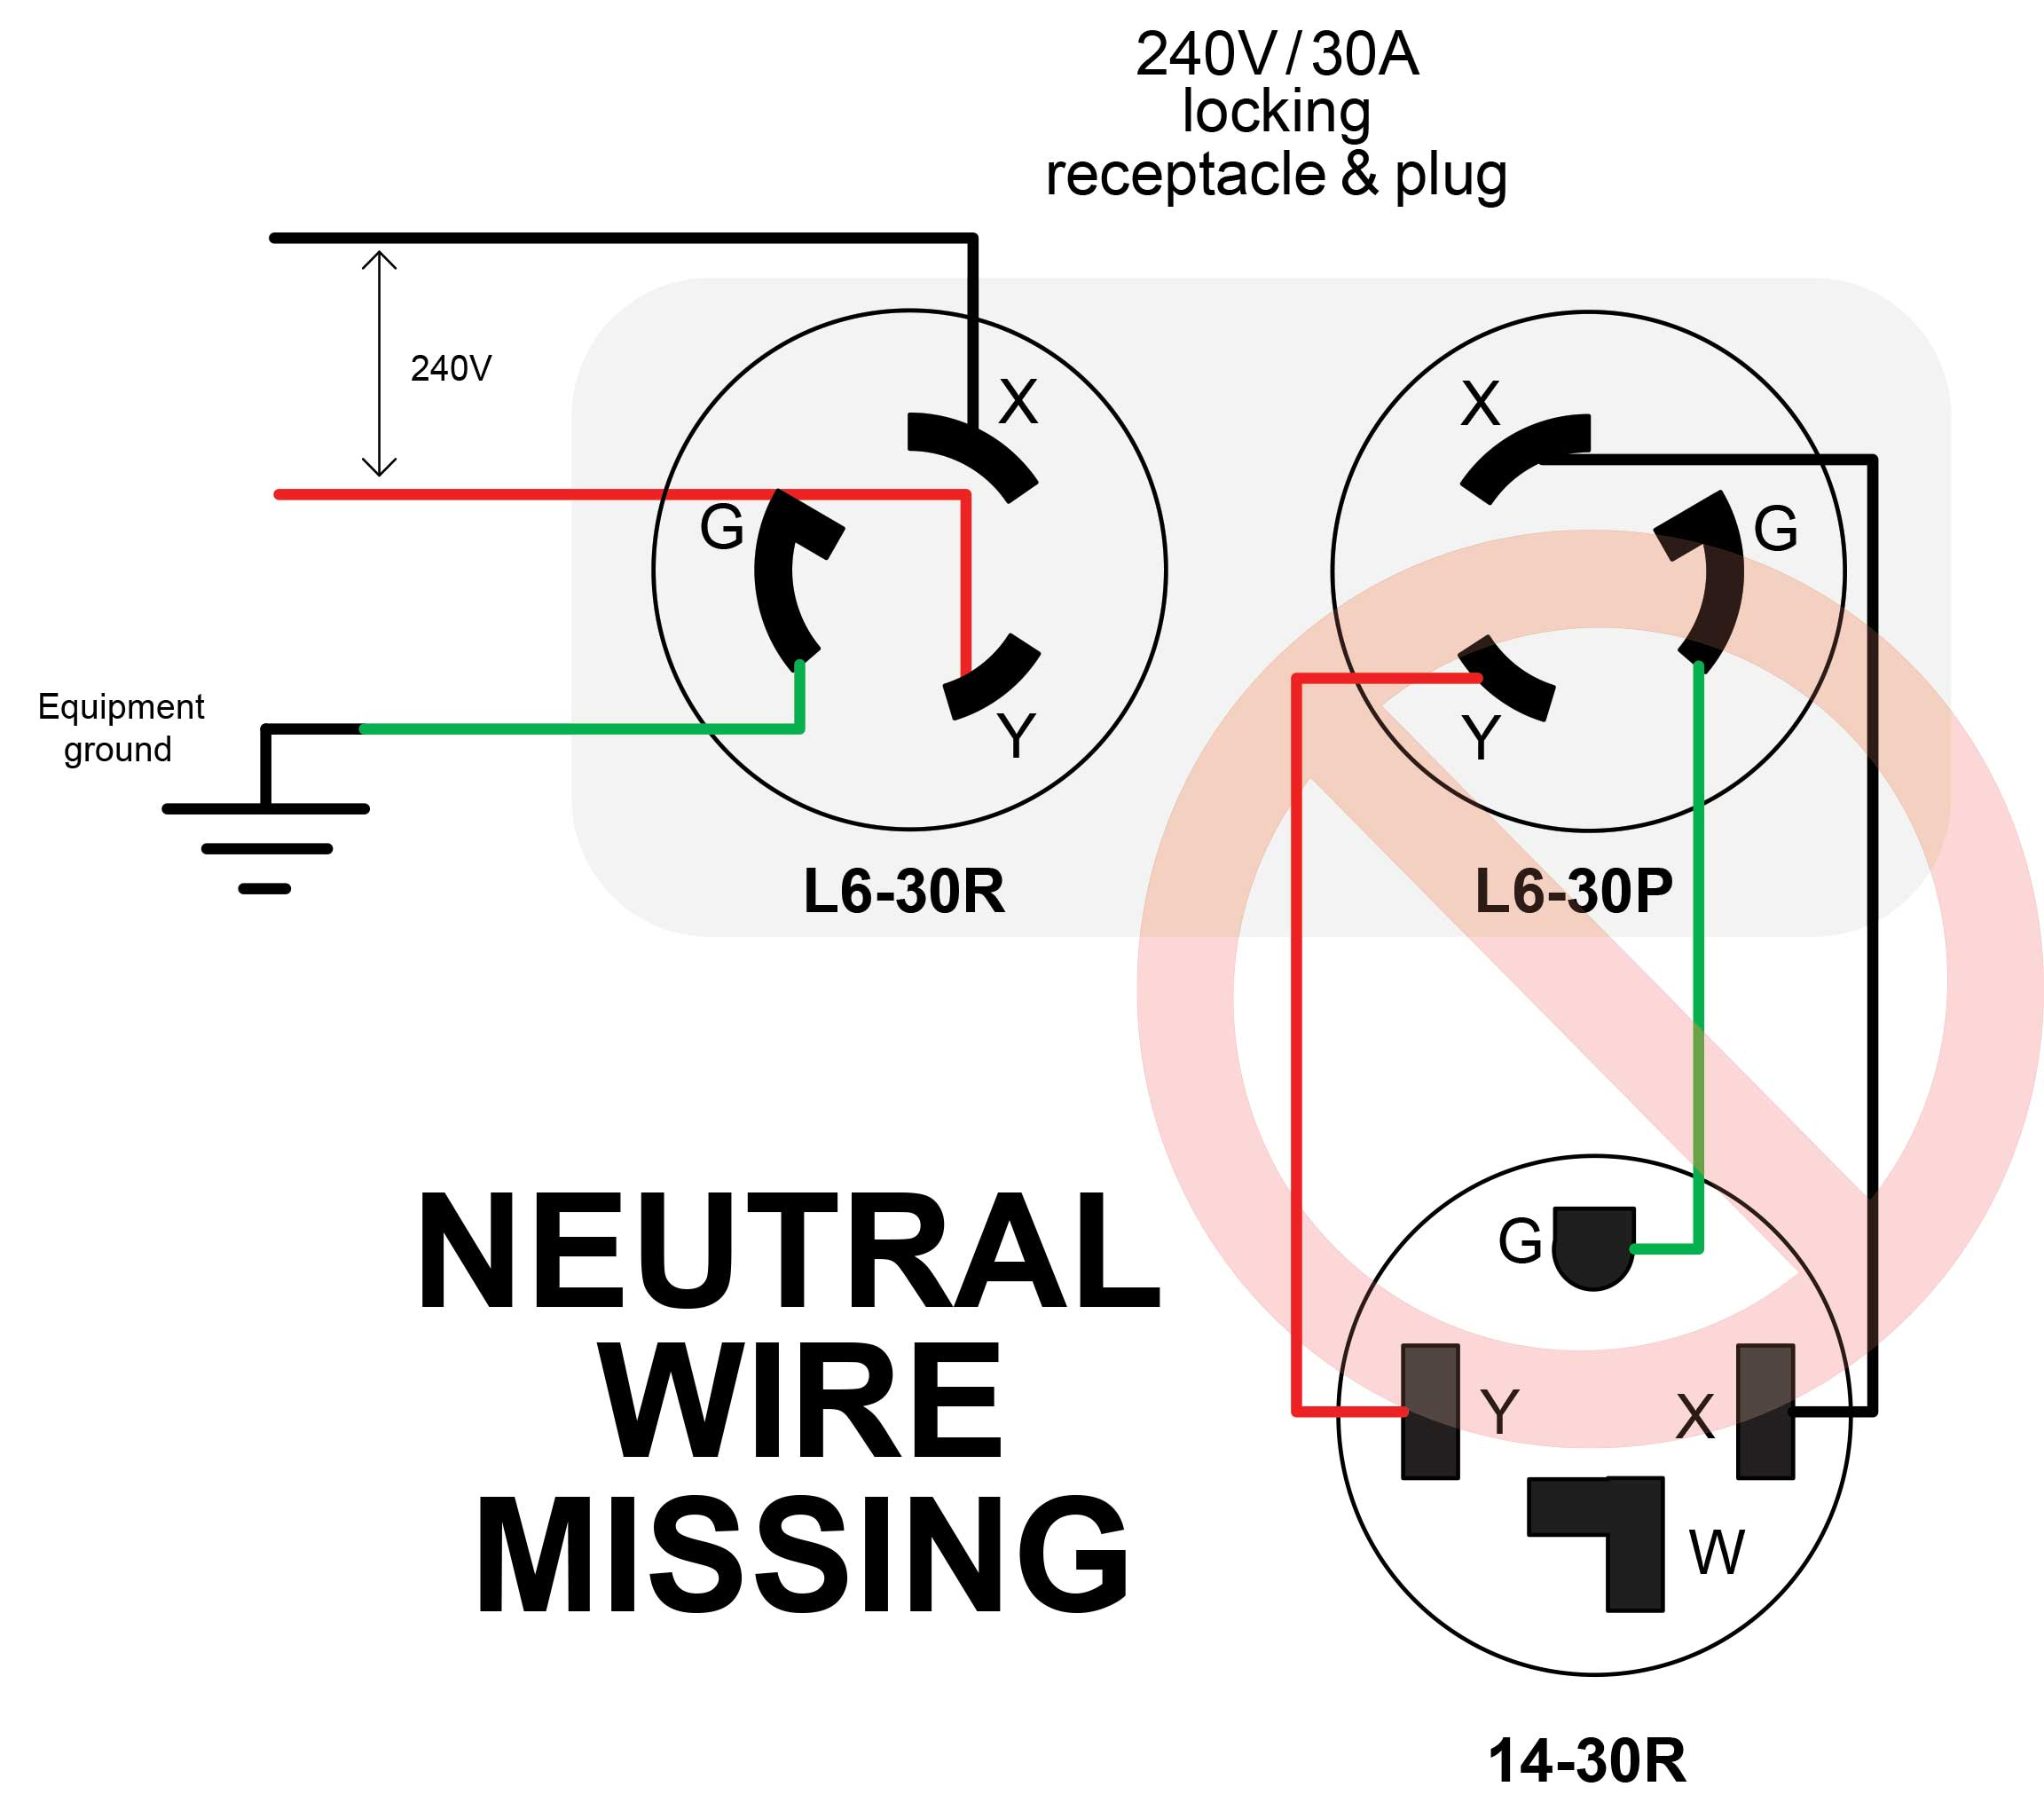 nema l6 30p wiring diagram   26 wiring diagram images